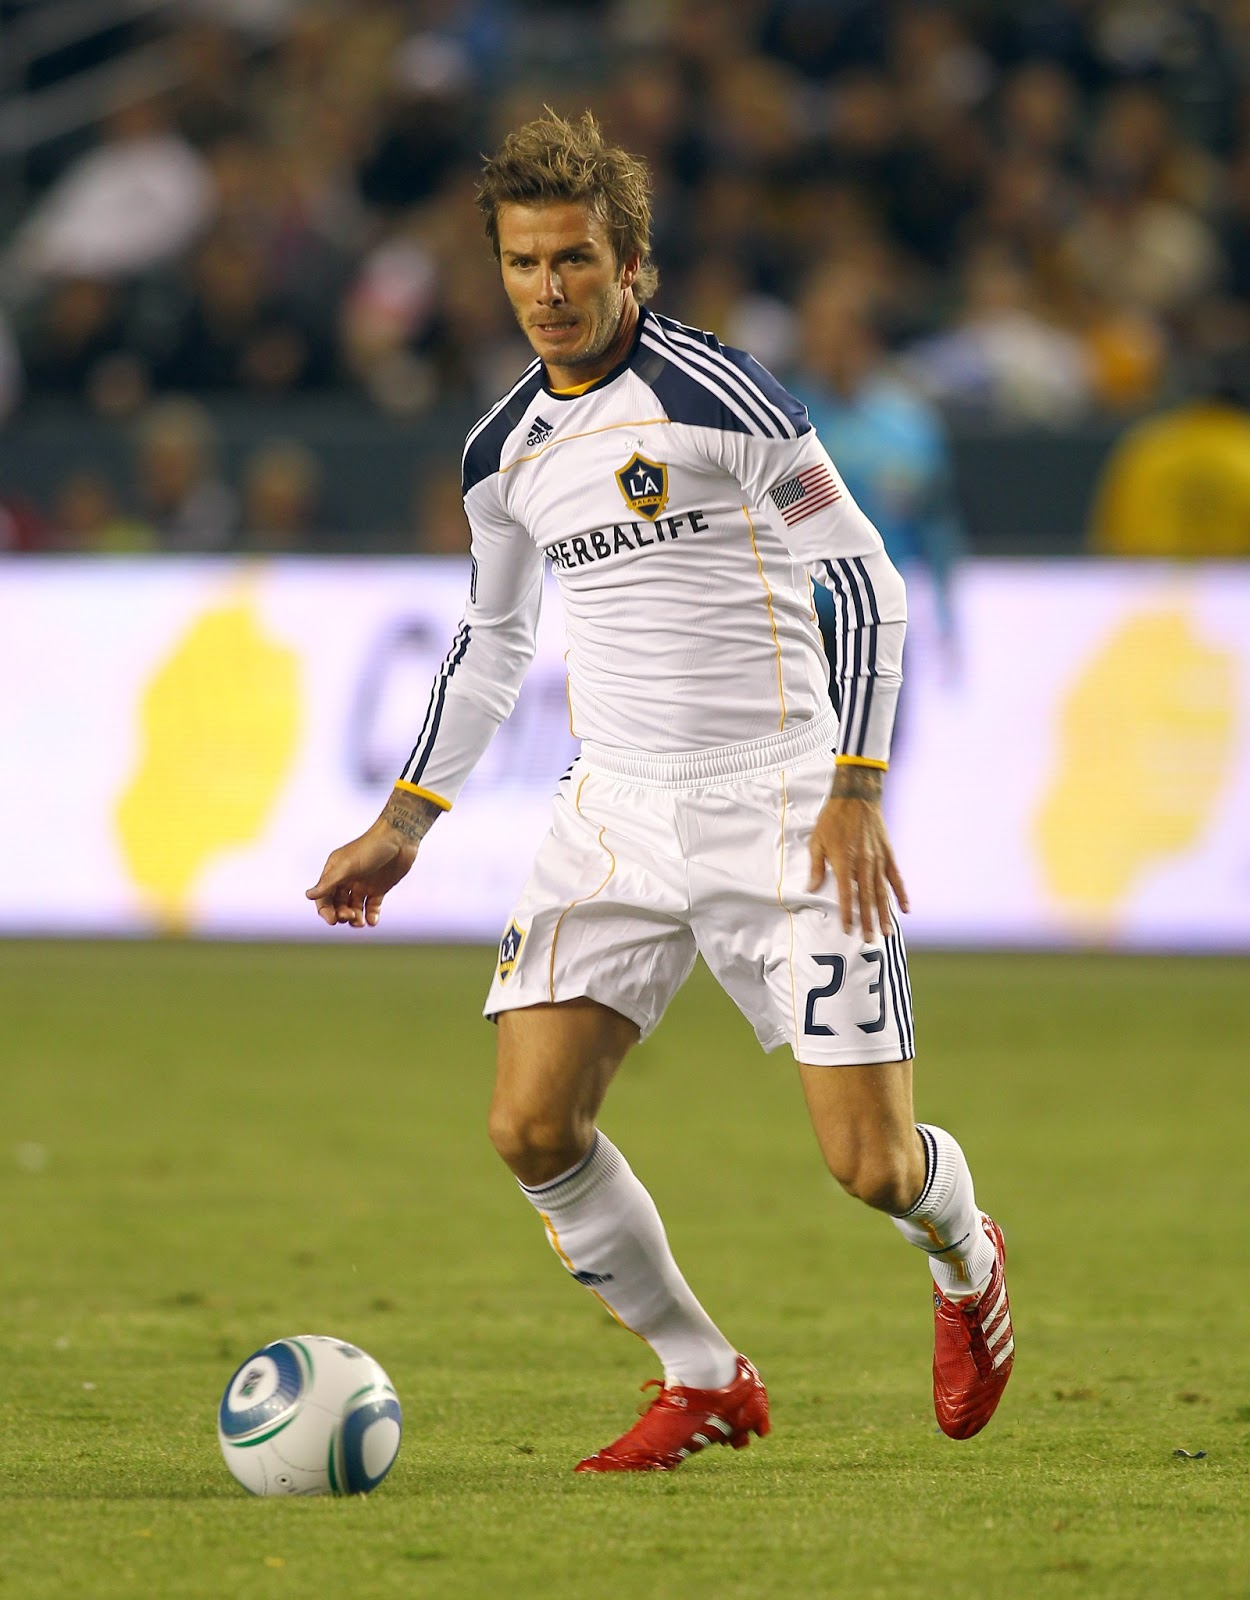 DaviD BeckhaM Wallpapers with Football 2013 ~ Sports ...